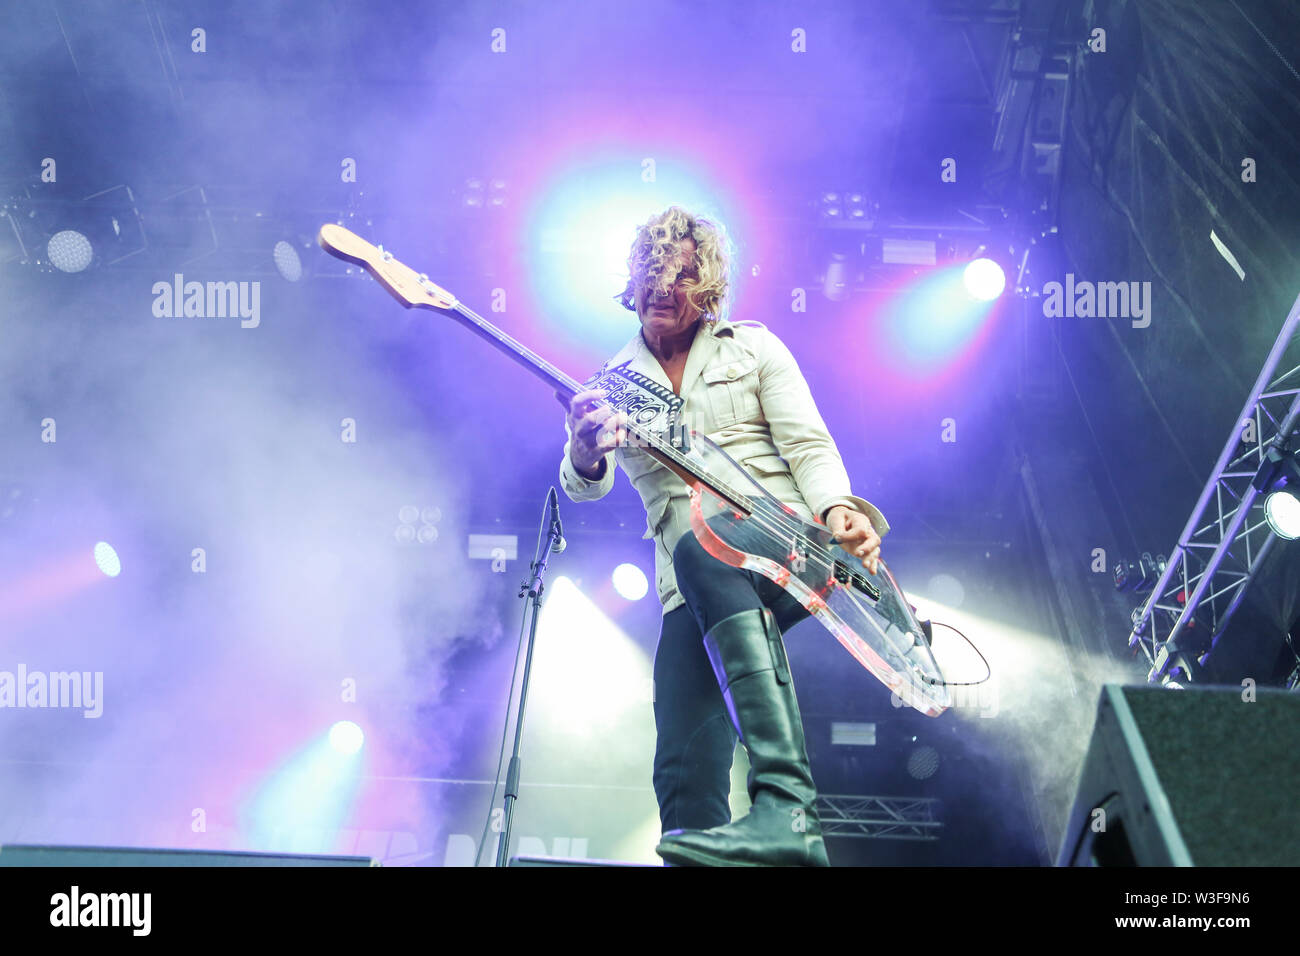 Kvinesdal, Norway - July 11th, 2019. The Danish rock band D-A-D performs a live concert during the Norwegian music festival Norway Rock Festival 2019. Here bass player Stig Pedersen is seen live on stage. (Photo credit: Gonzales Photo - Synne Nilsson). - Stock Image